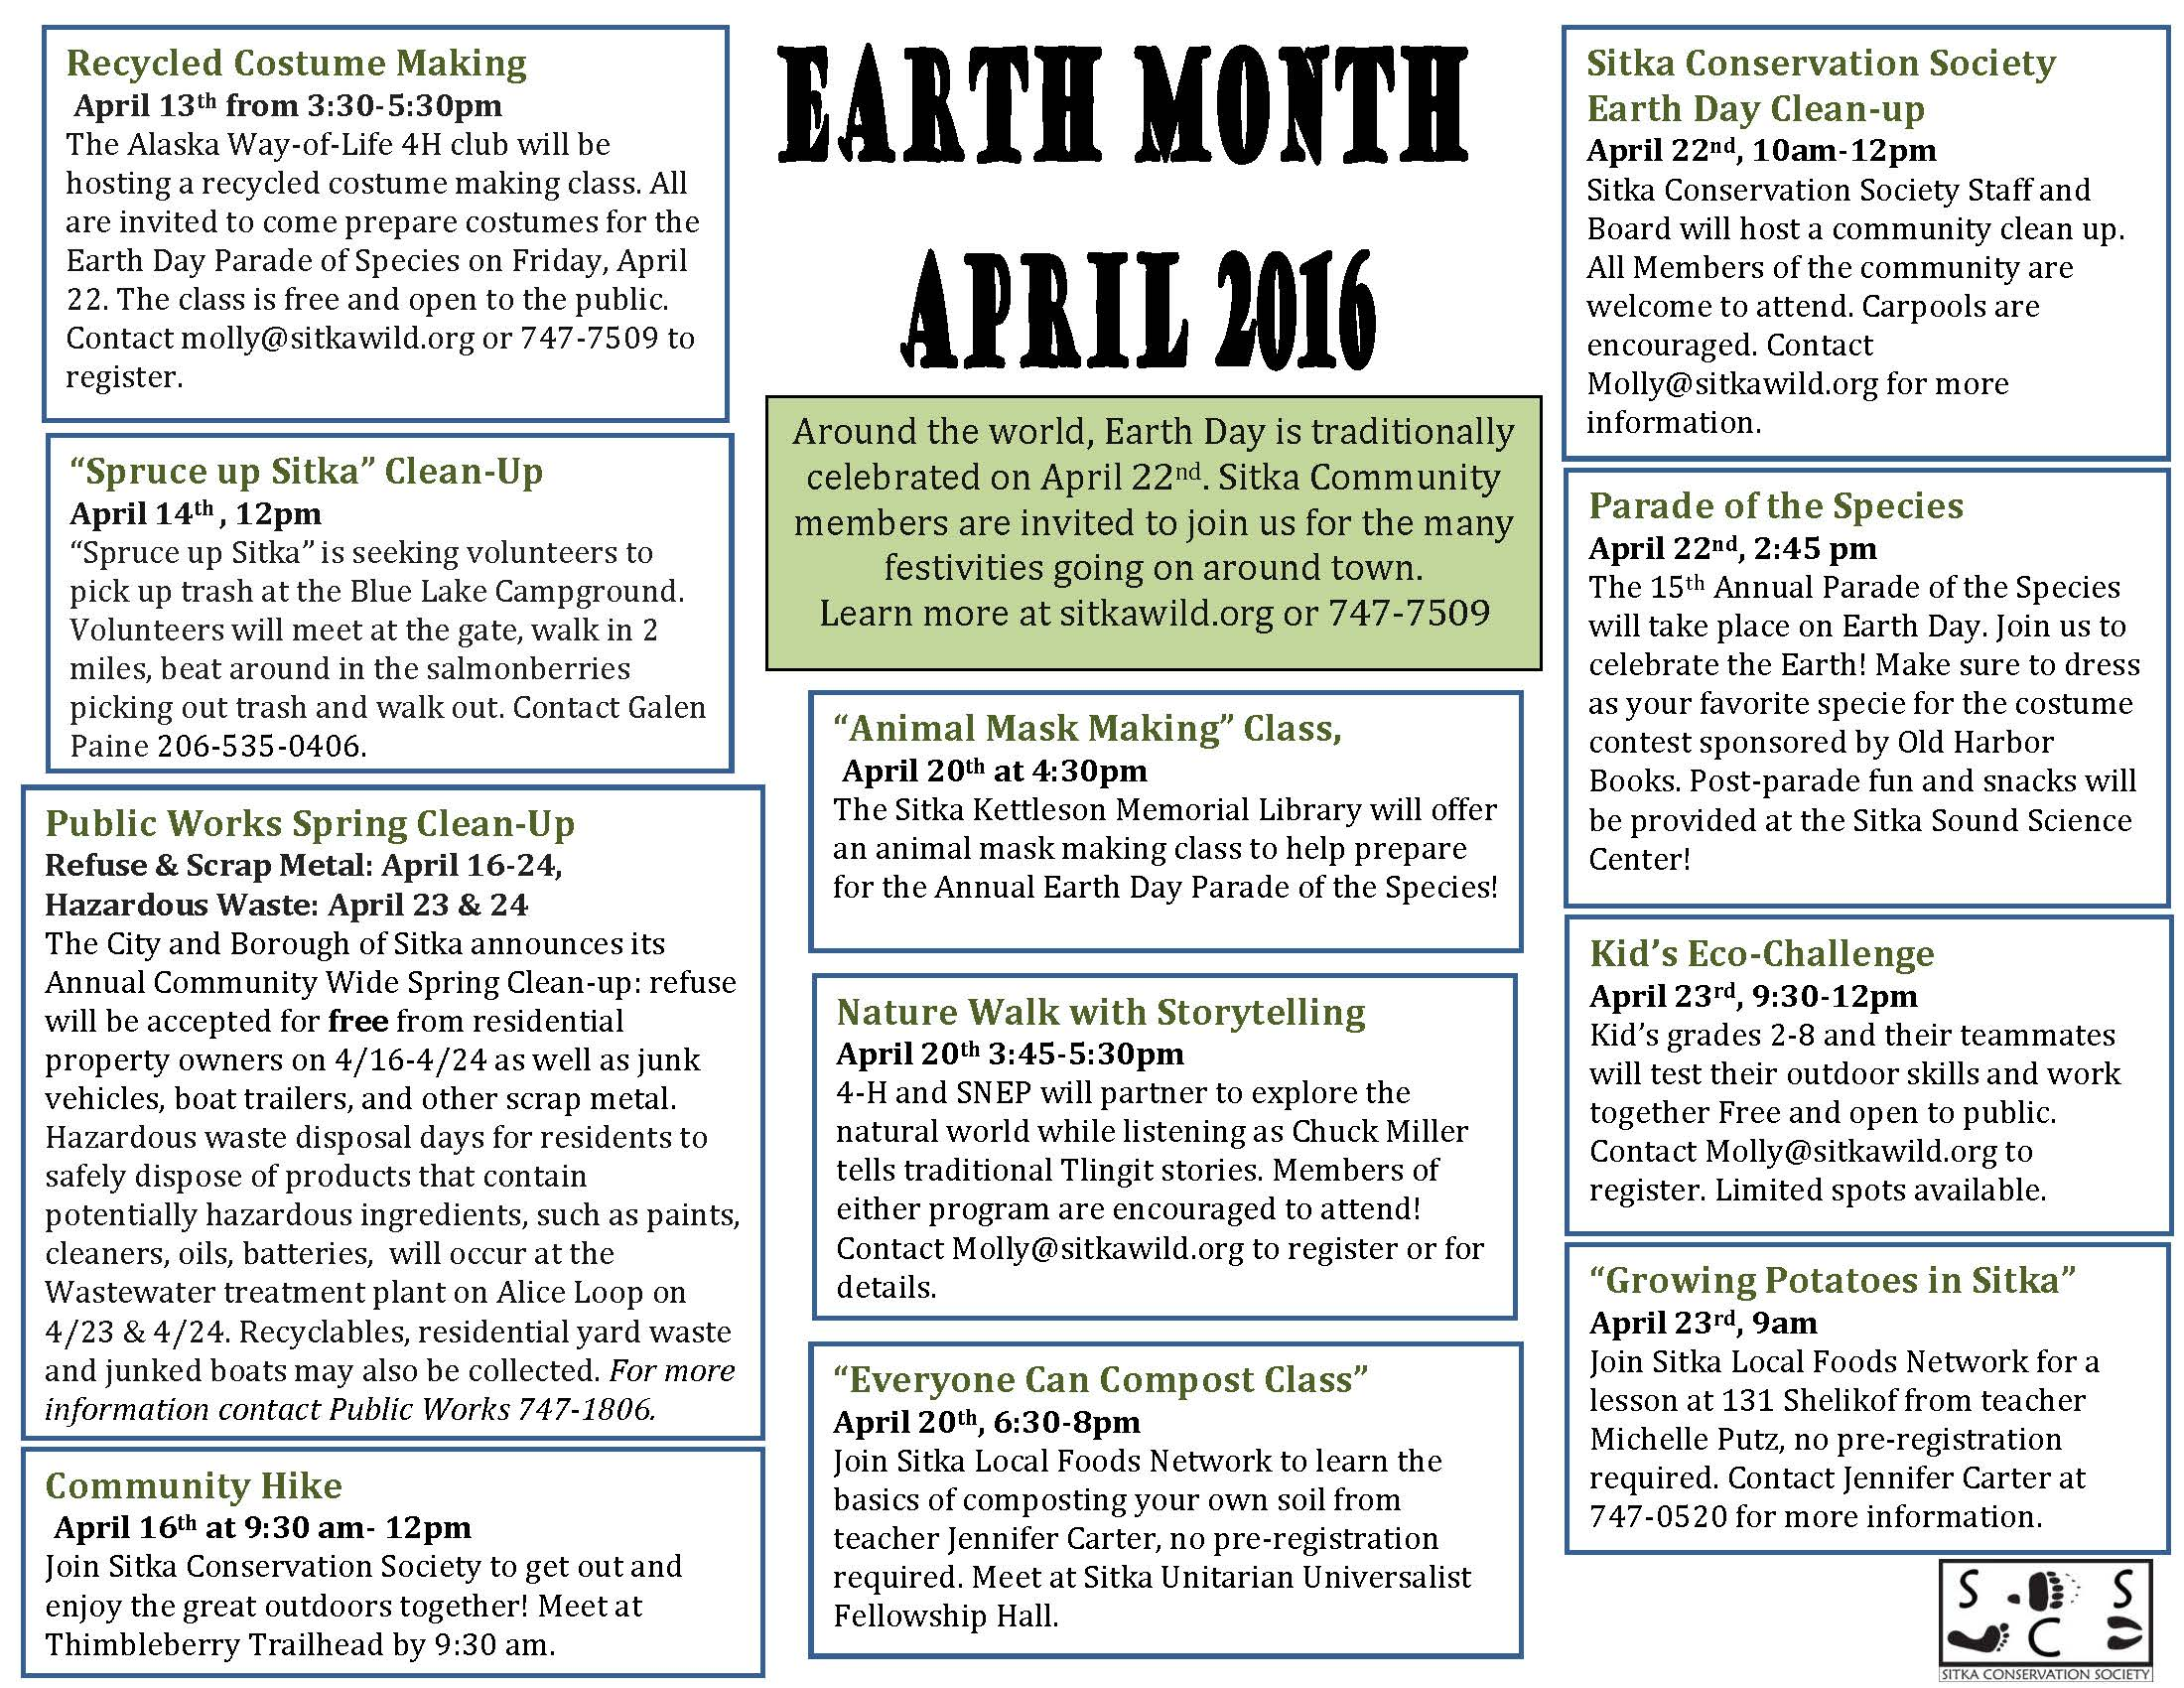 Earth Month Activities Include The Parade Of The Species